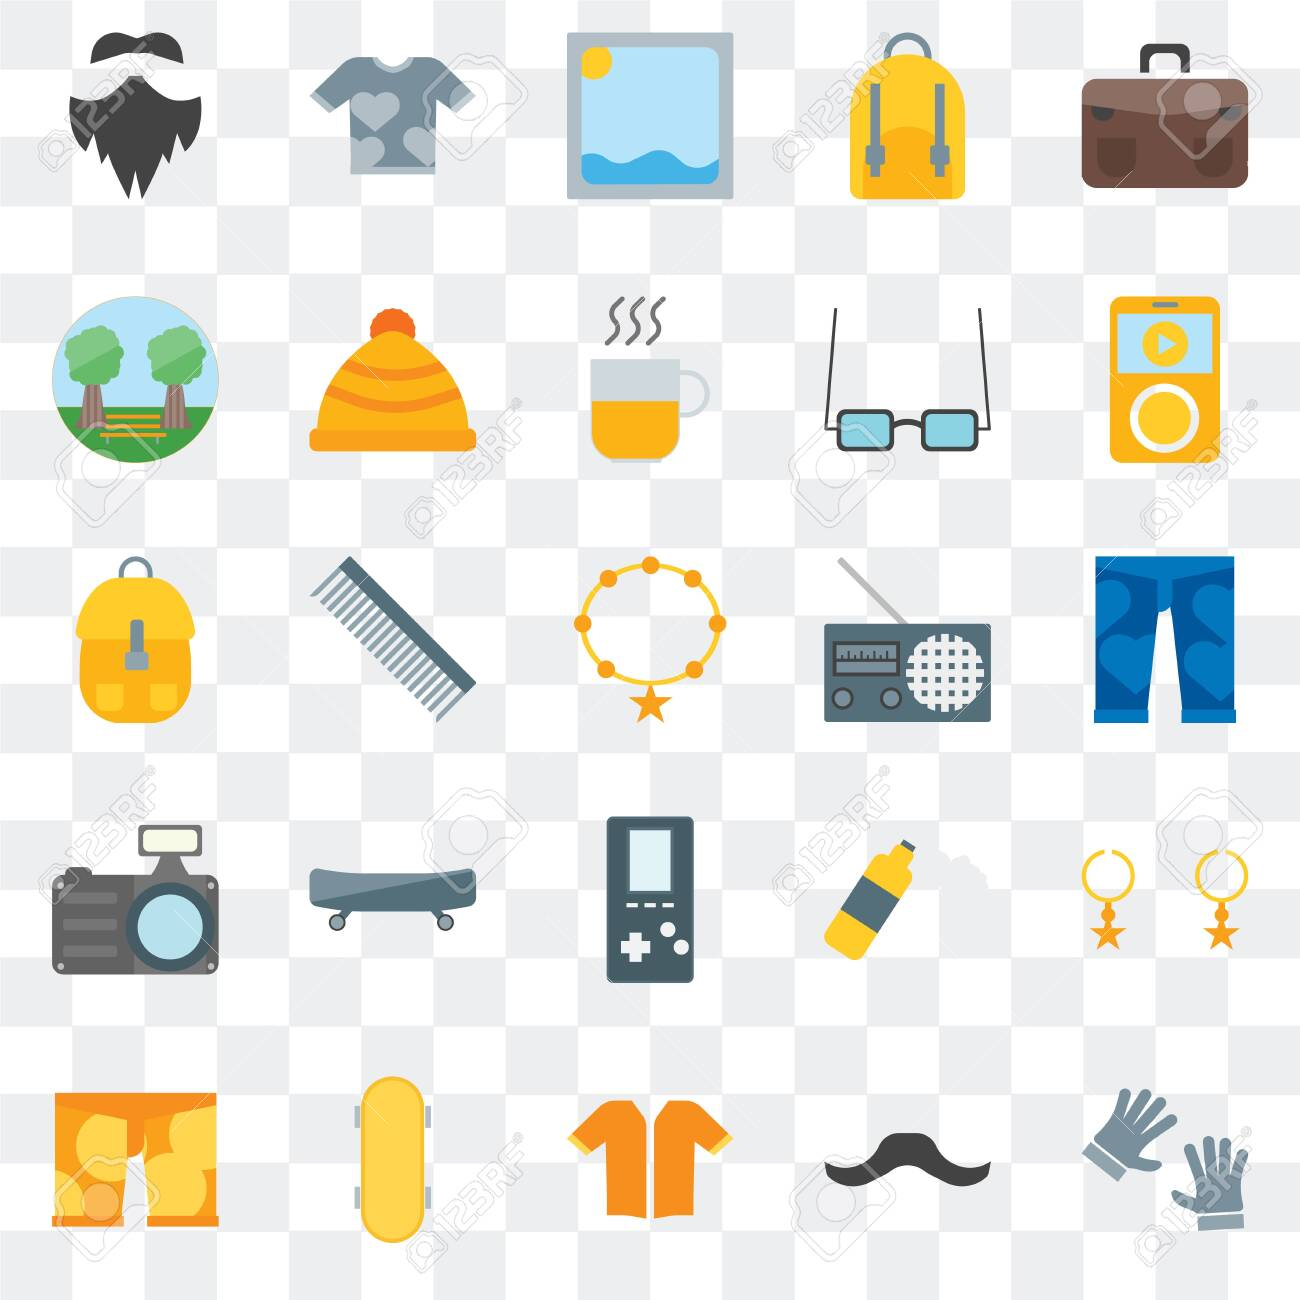 Set Of 25 transparent icons such as Accessory, Hipster, Short sleeves, Skateboard, Clothing, Radio, Photo camera, Garden, Picture, Shirt, web UI transparency icon pack - 130332486